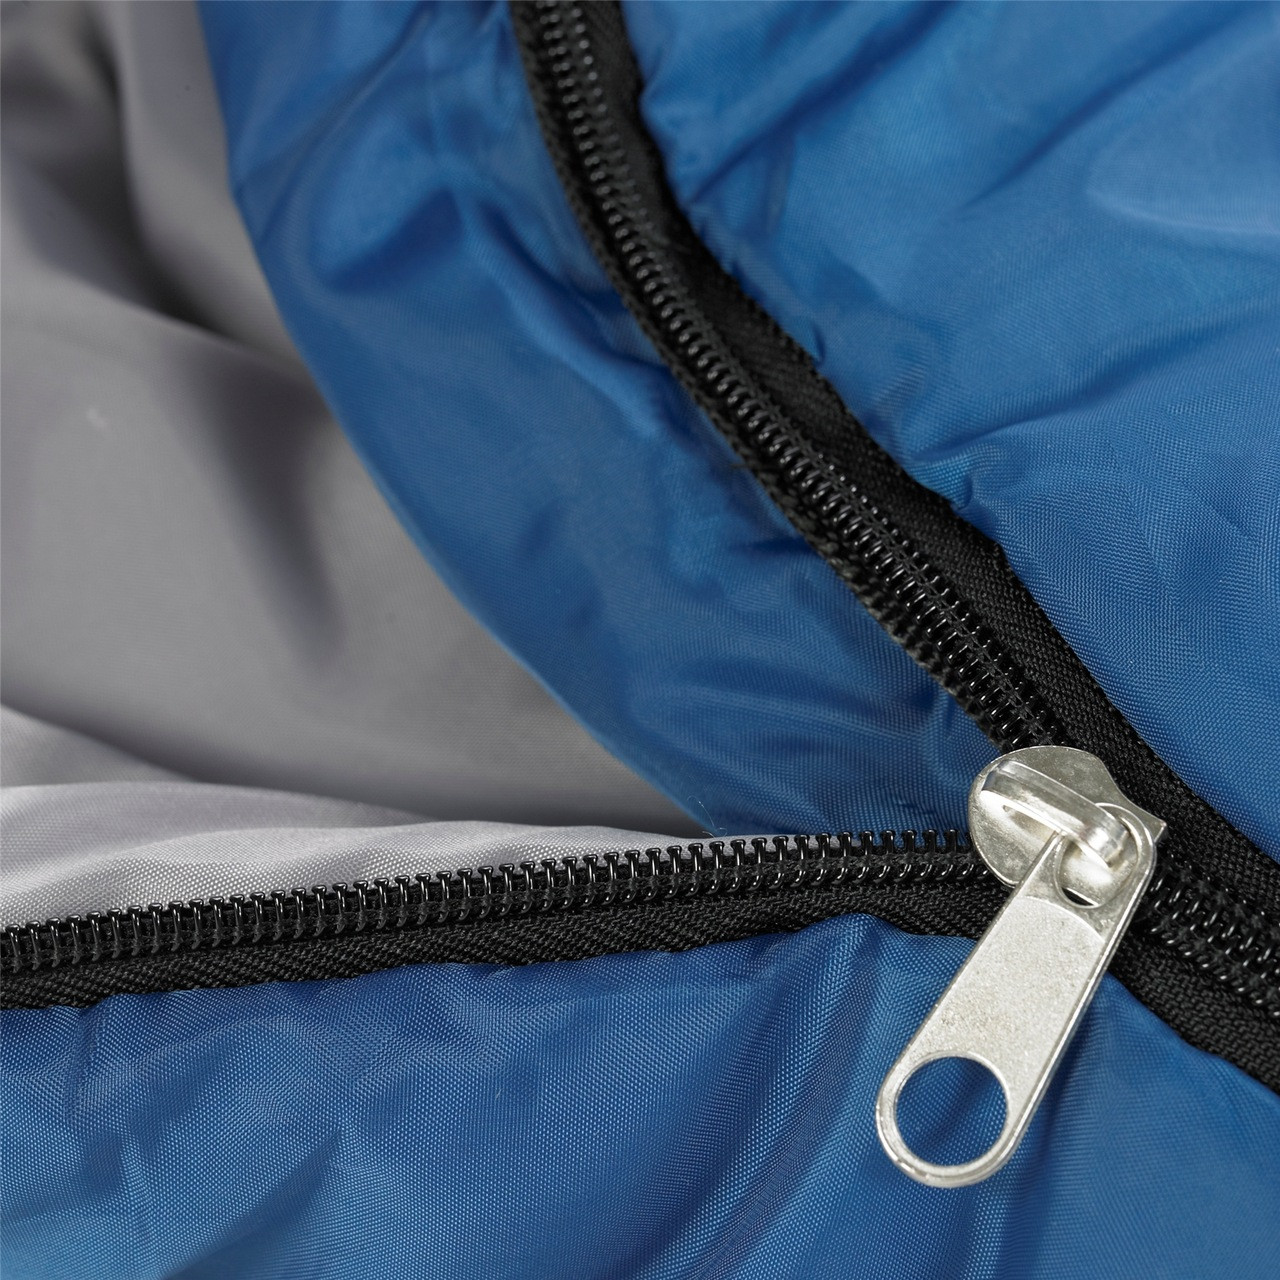 Close up view of the main zipper partially unzipped on the Wenzel Santa Fe Mummy 20 degree sleeping bag